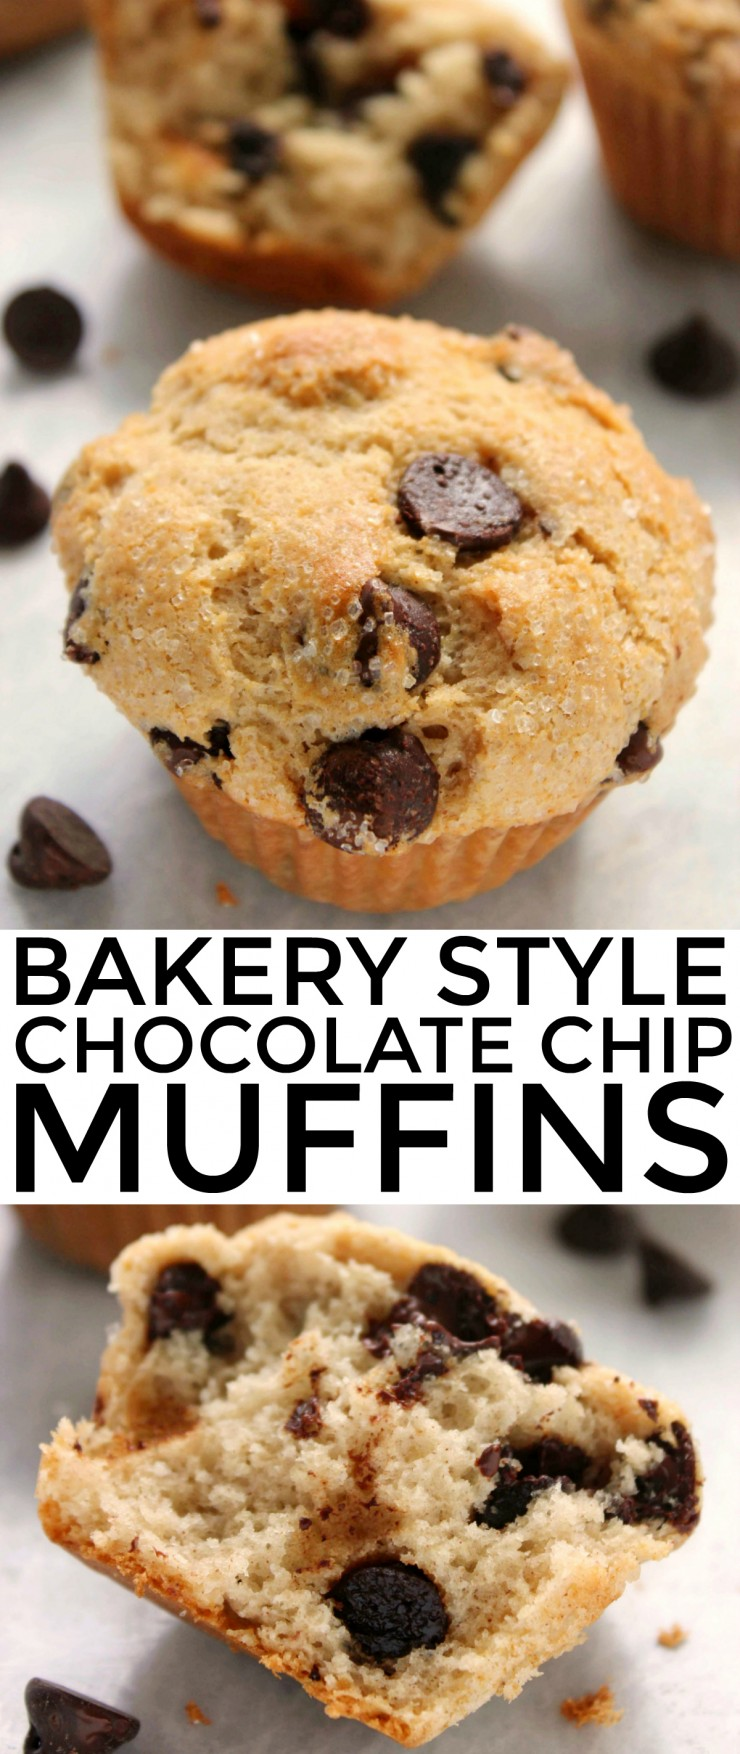 Paired with a hot cup of coffee, these bakery style chocolate chip muffins make for a delicious breakfast time treat. This is a muffin recipe that is sure to be a favourite with your family!